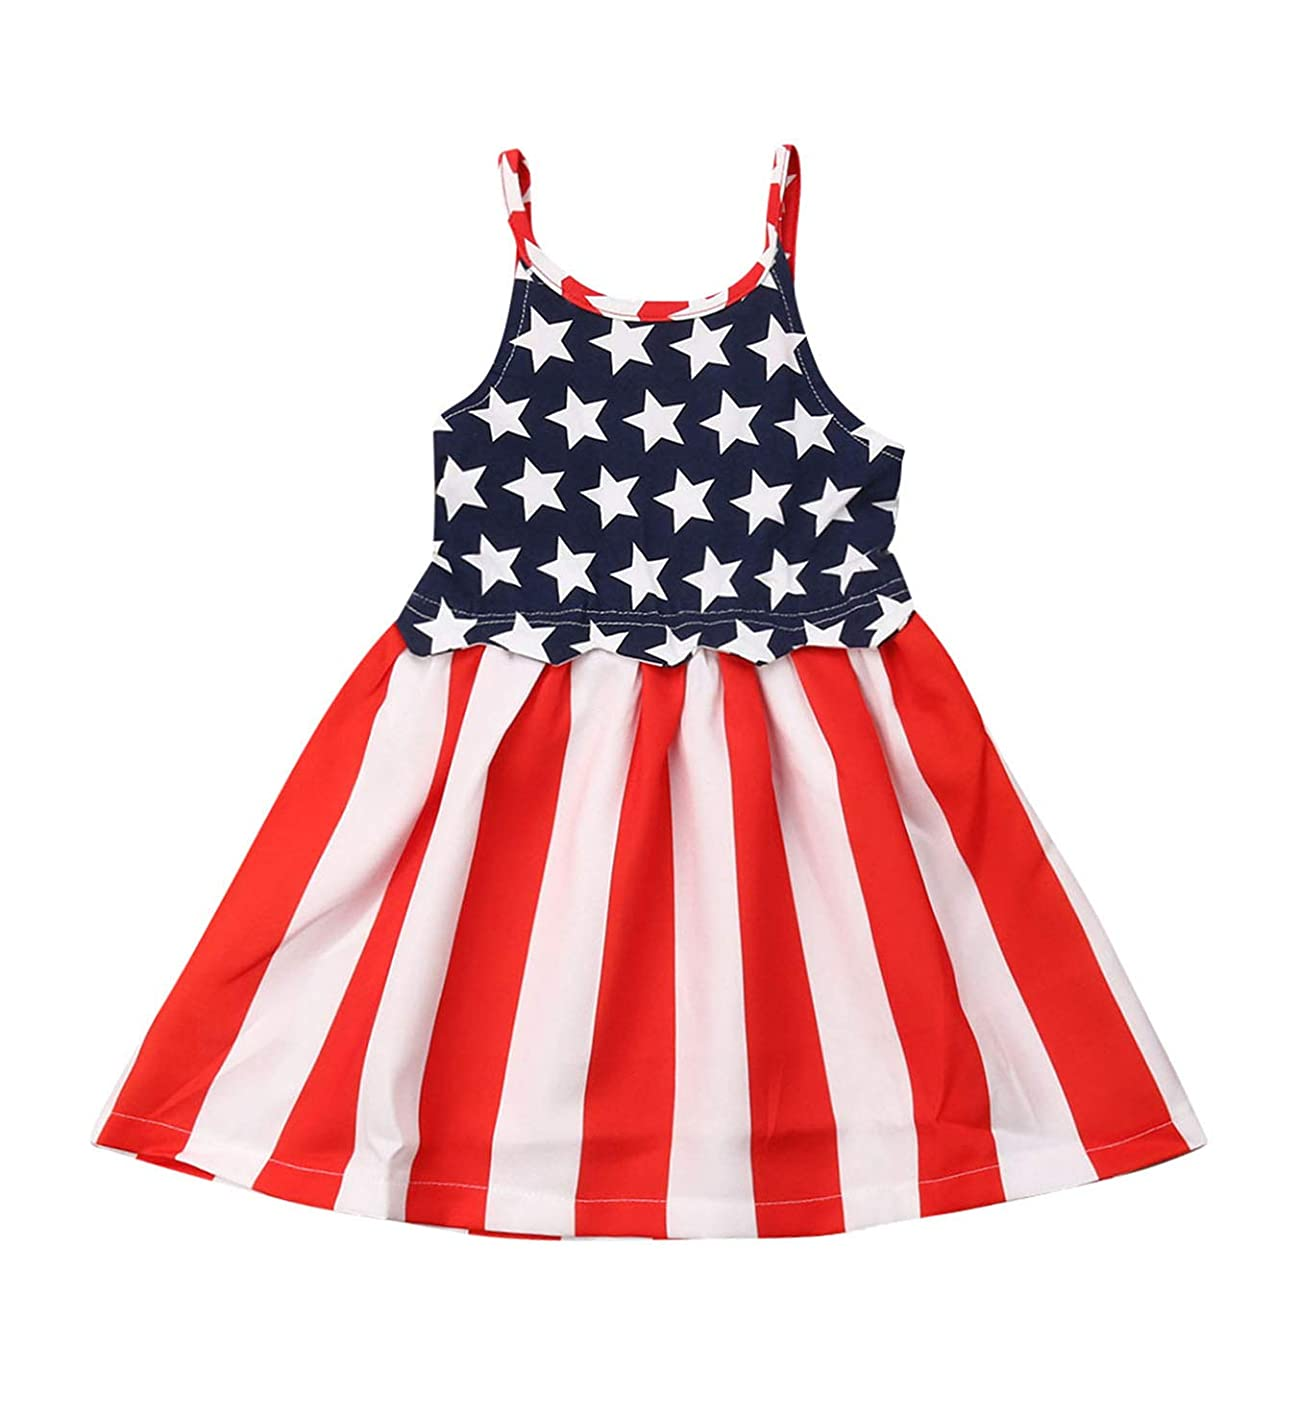 Baby Girls 4th of July Dress Striped&Stars Halter Sleeveless Summer Dresses American Flag Independence Day Dresses dexytmotncs472